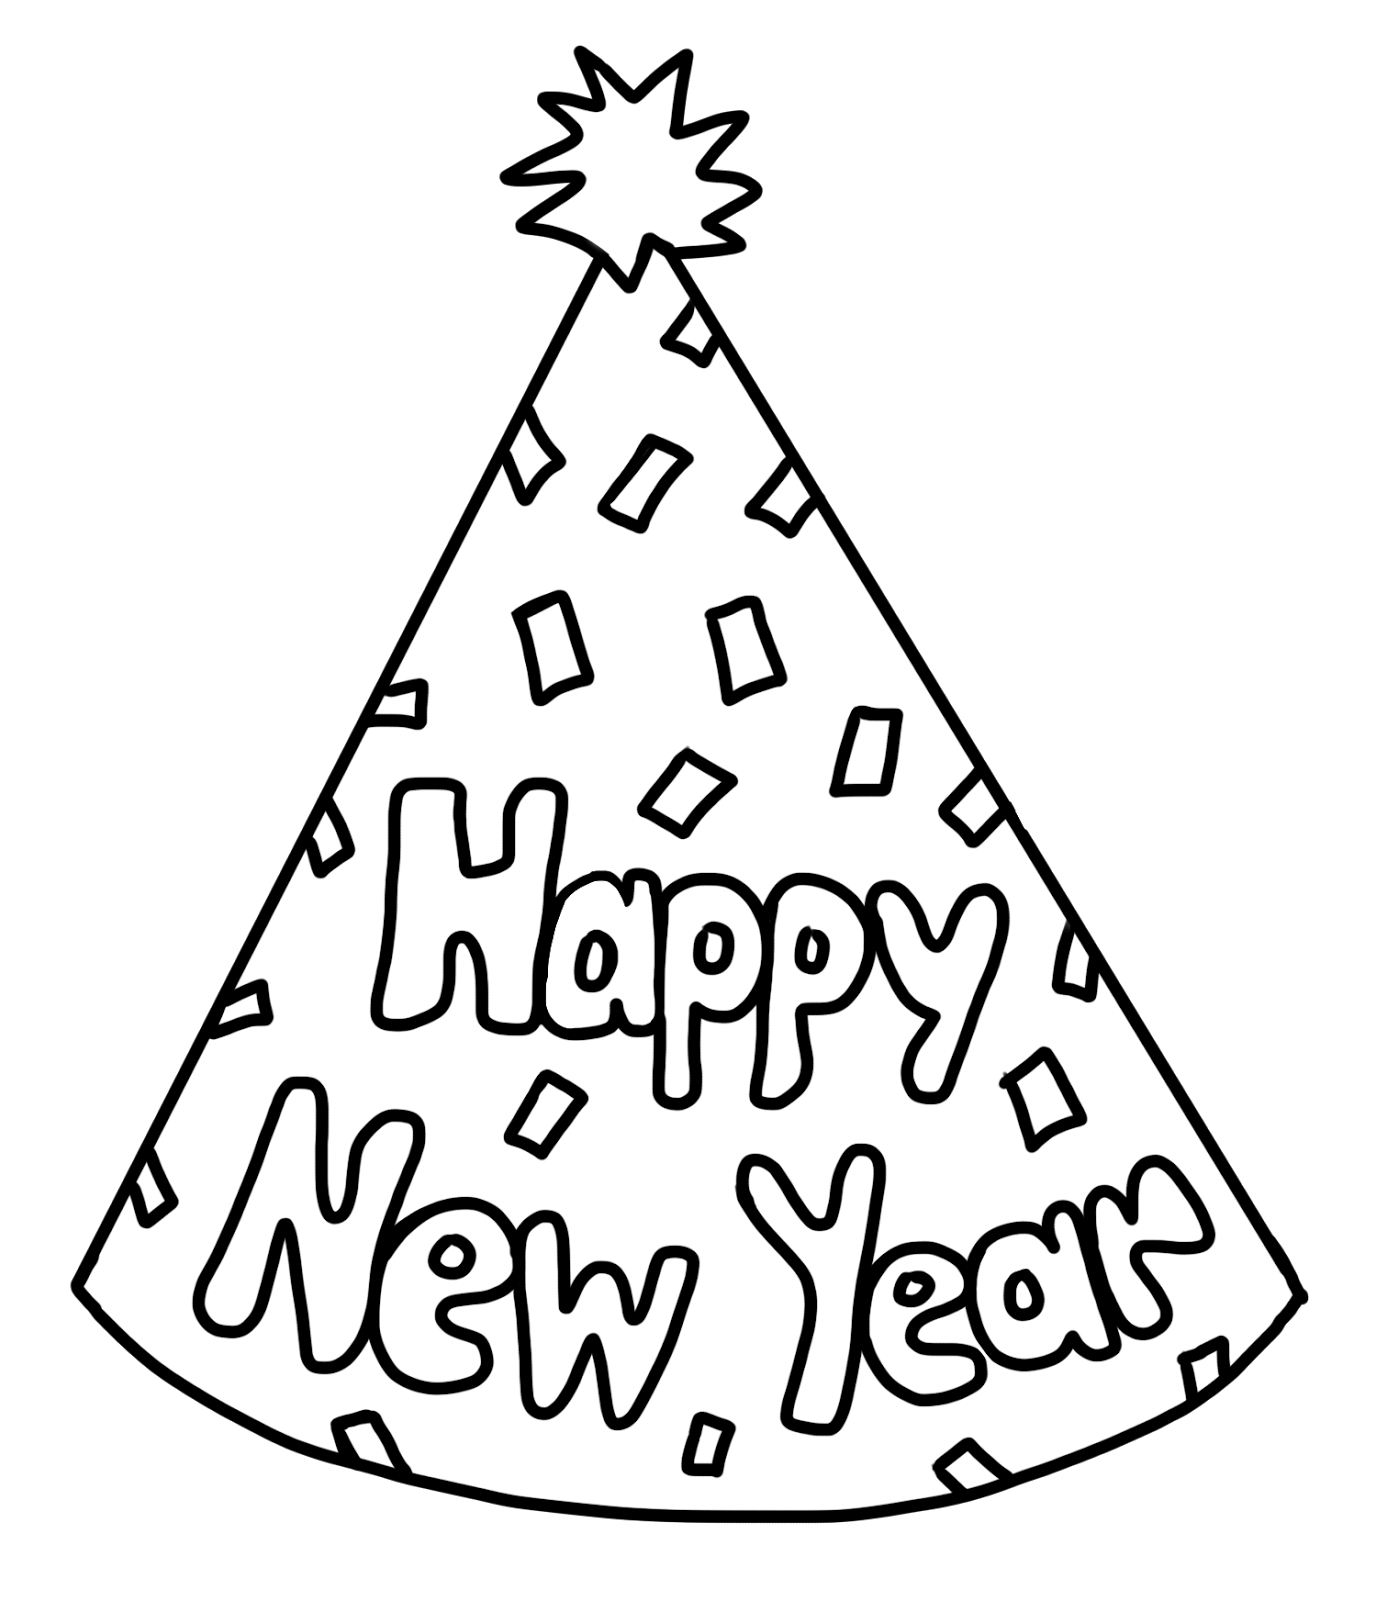 Free coloring pages new years -  New Years Day Coloring Pages New Years Day Clipart Clipart Panda Free Clipart Images